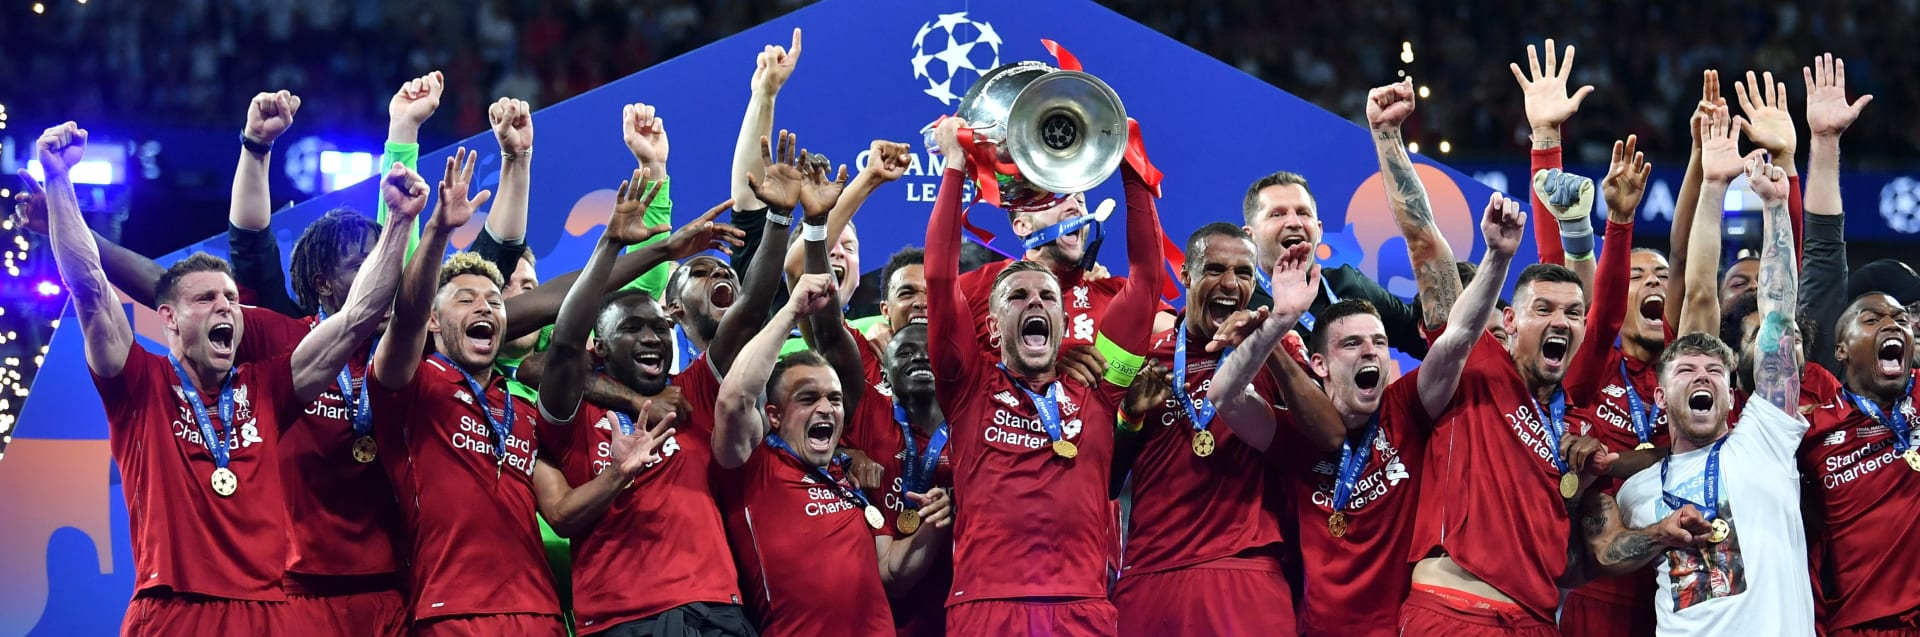 Liverpool's English midfielder Jordan Henderson raises the trophy after winning the UEFA Champions League final football match between Liverpool and Tottenham Hotspur at the Wanda Metropolitano Stadium in Madrid on June 1, 2019. (Photo by Ben STANSALL / AFP)        (Photo credit should read BEN STANSALL/AFP via Getty Images)